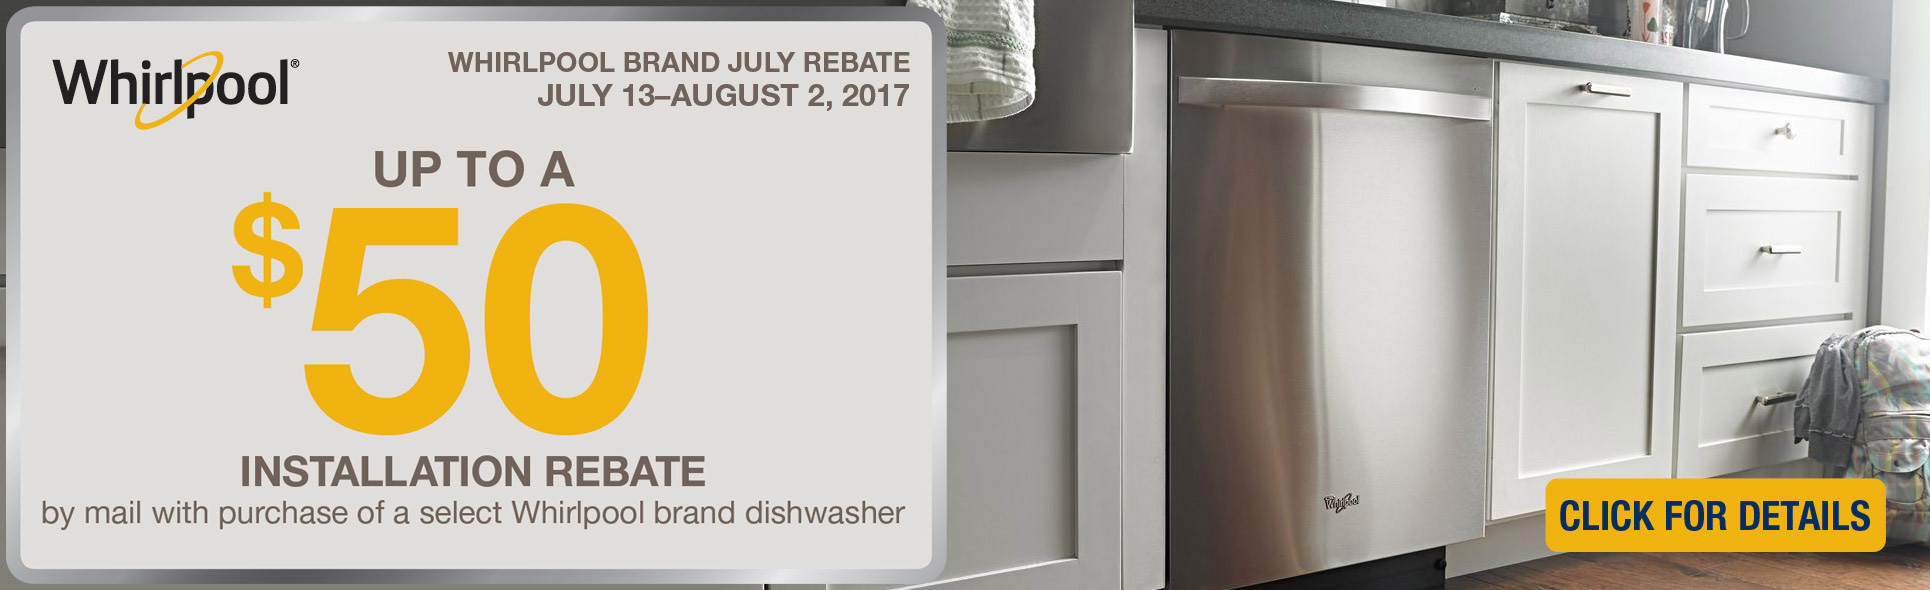 Whirlpool Dishwasher Rebate- Save up to $50